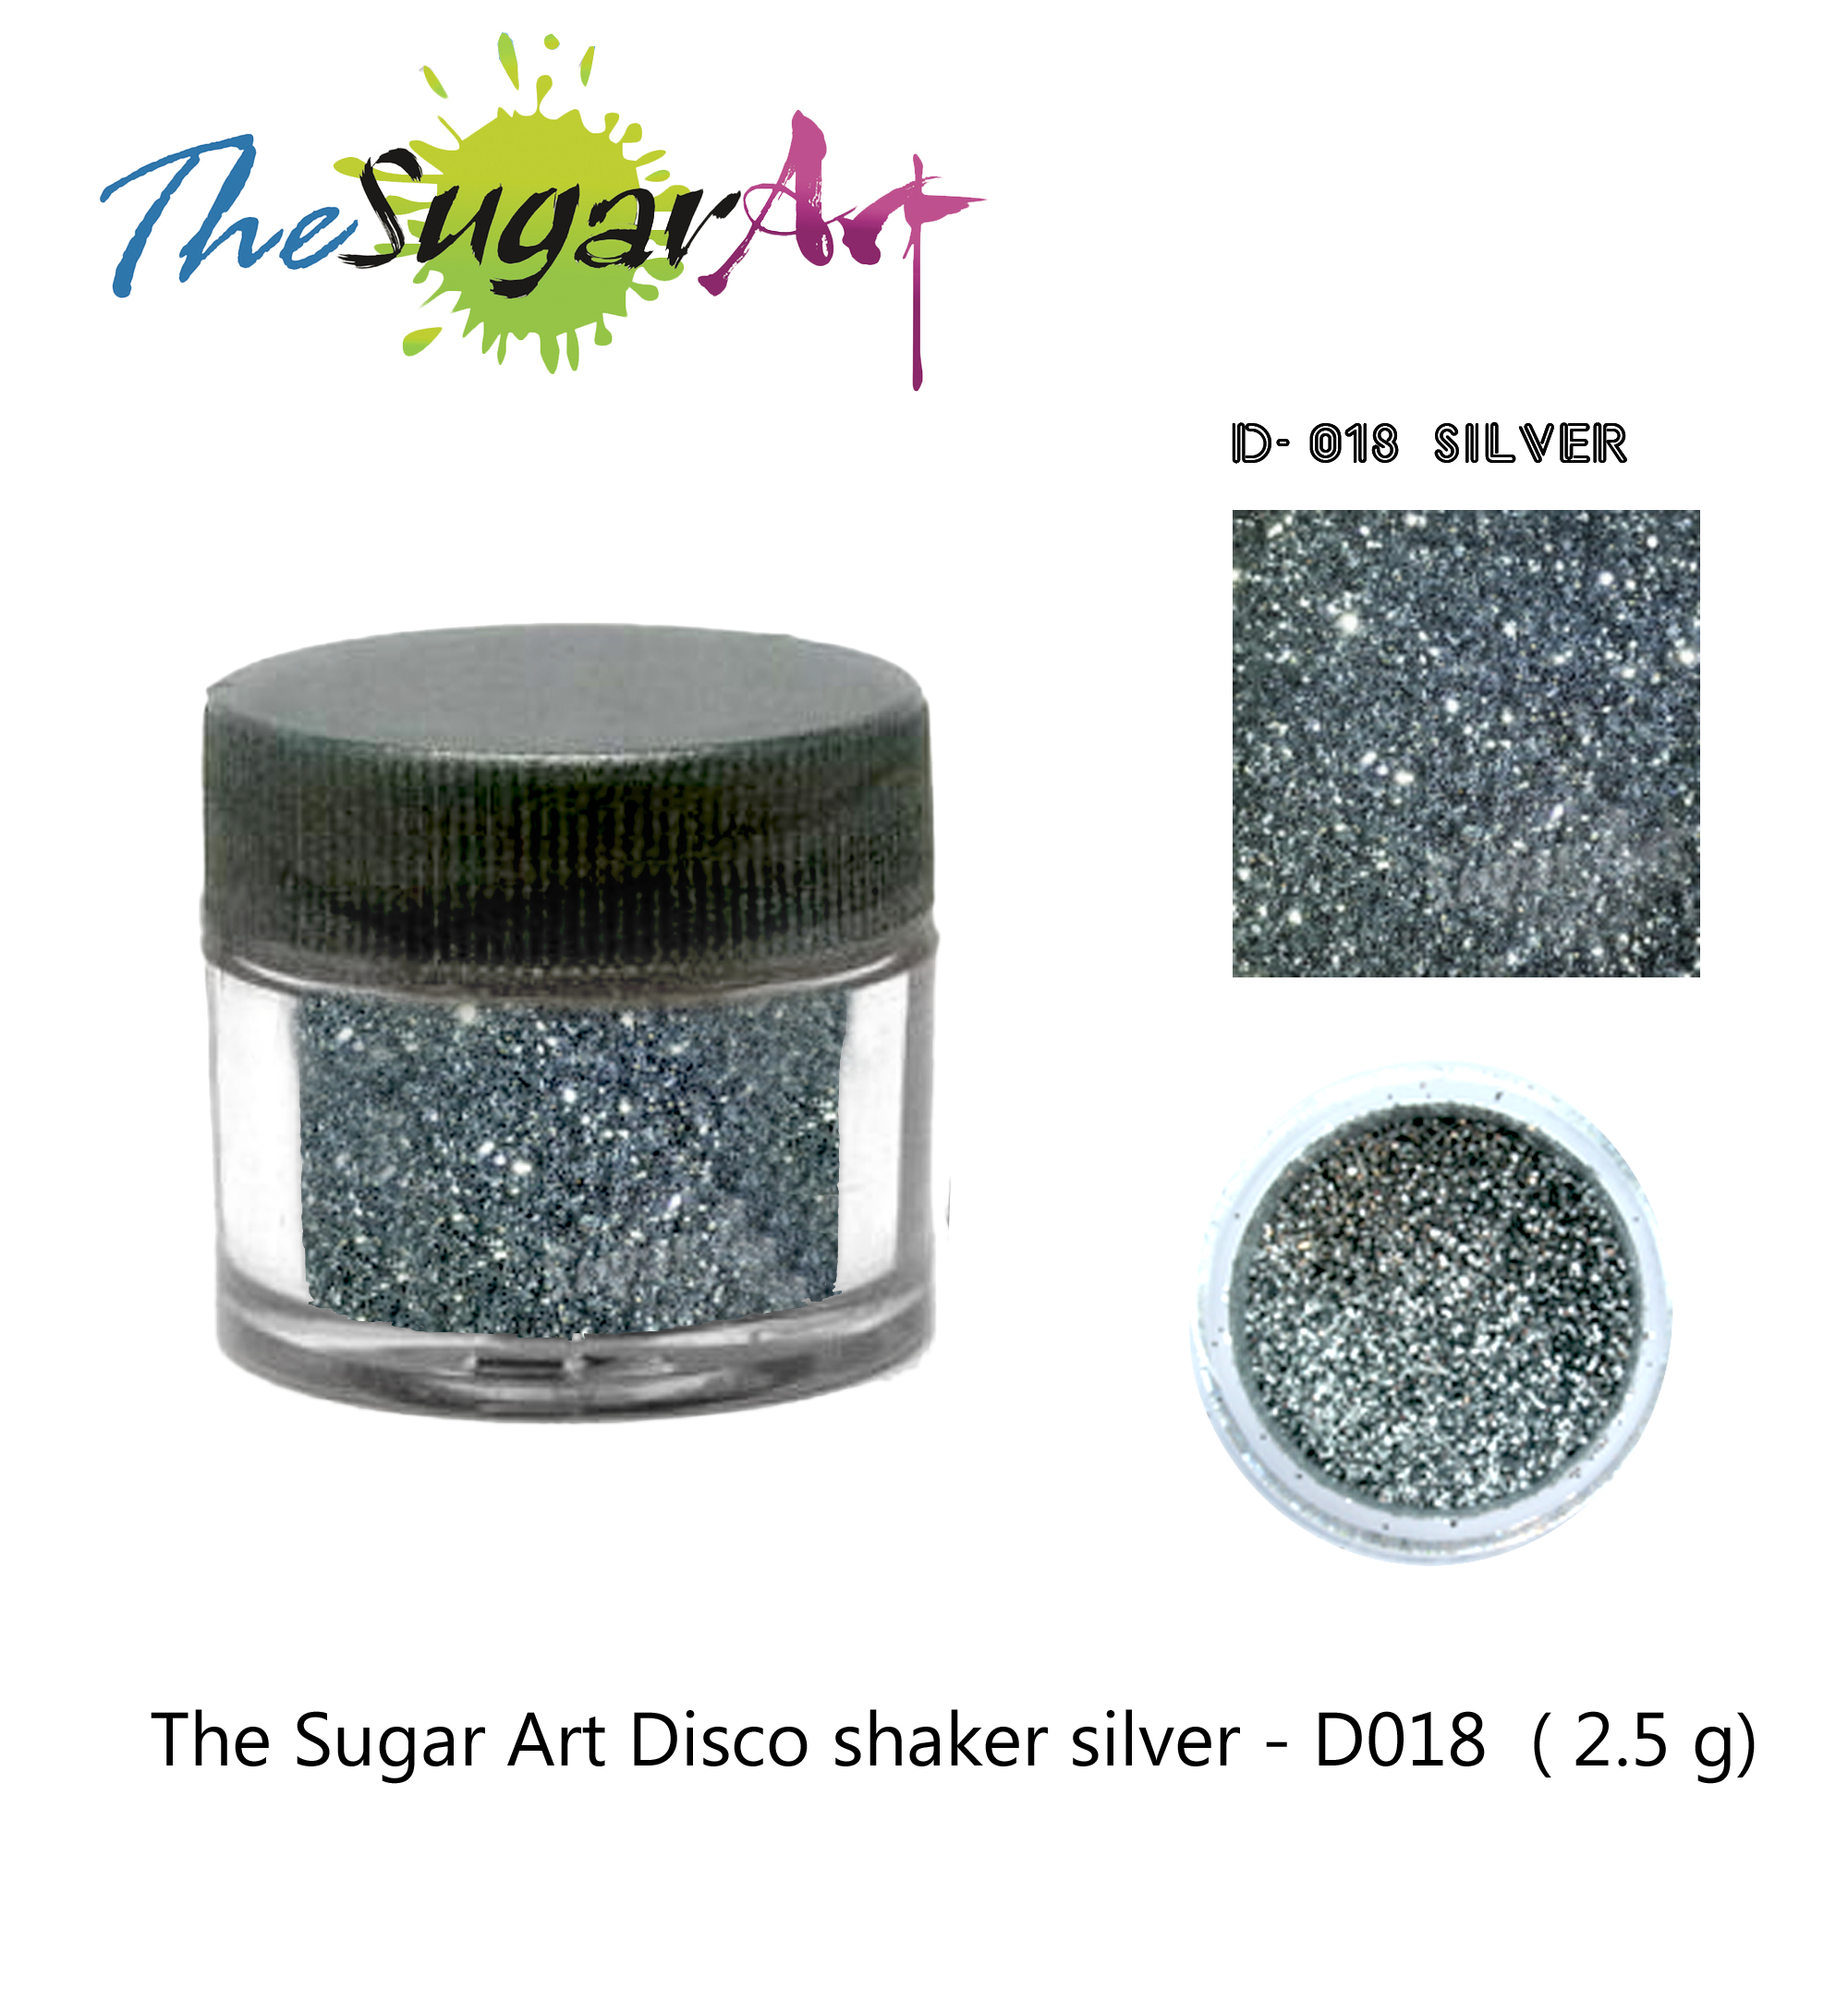 The Sugar Art Disco shaker silver - D018 ( 2.5 g)